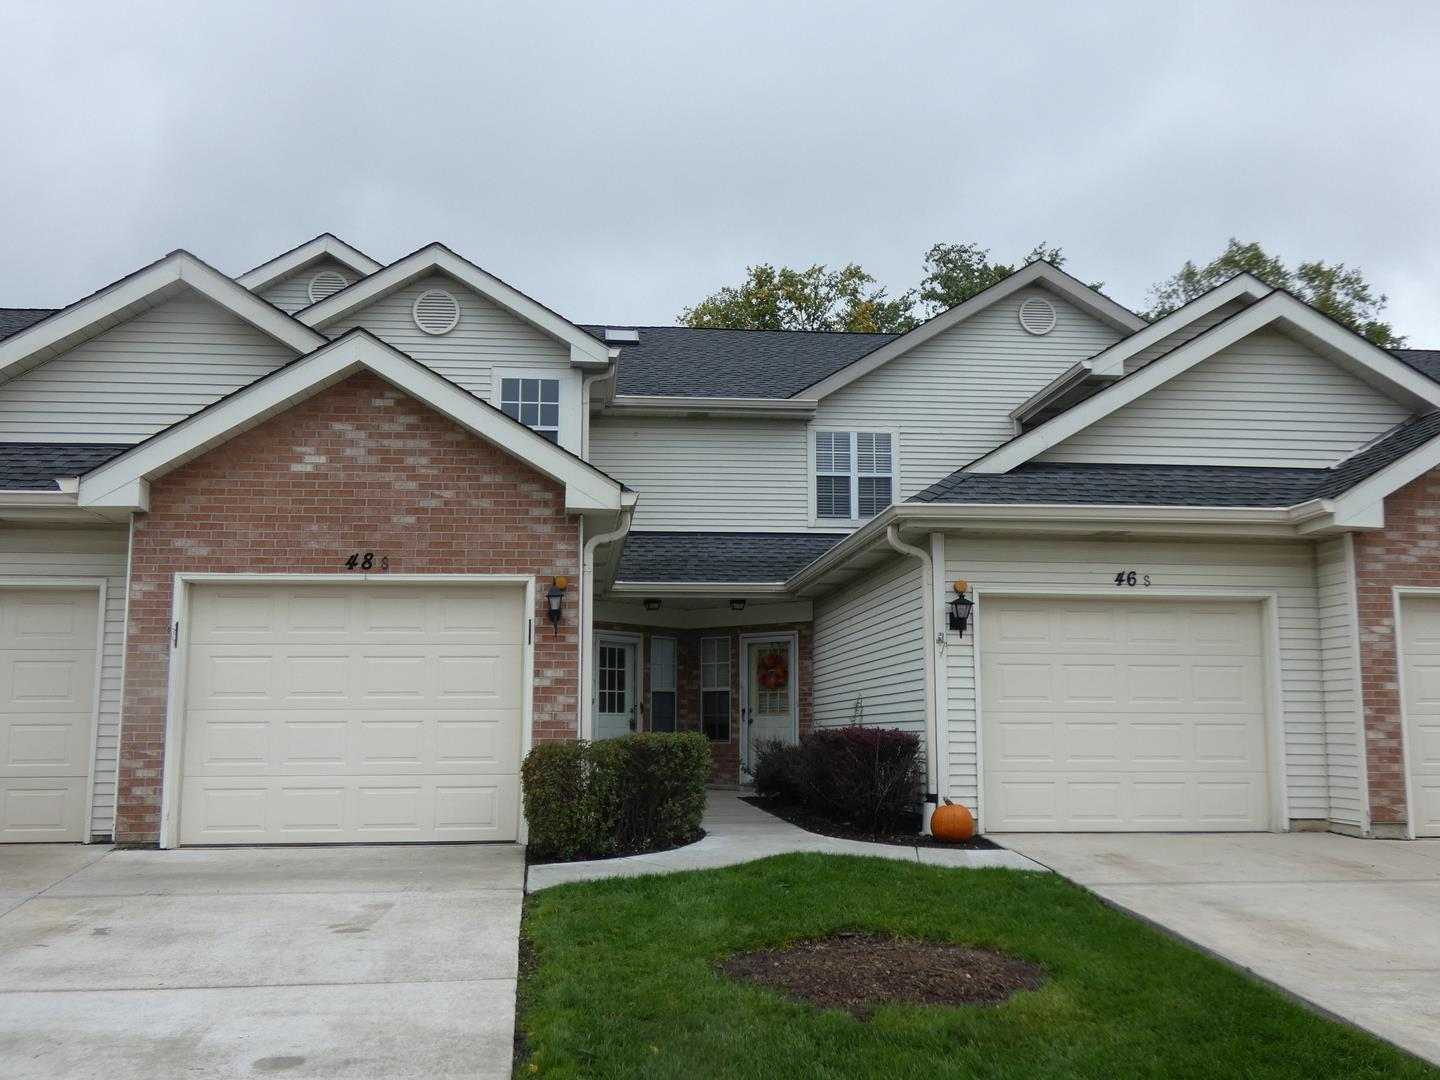 48 S Golfview Court, Glendale Heights, IL 60139 - #: 11046772